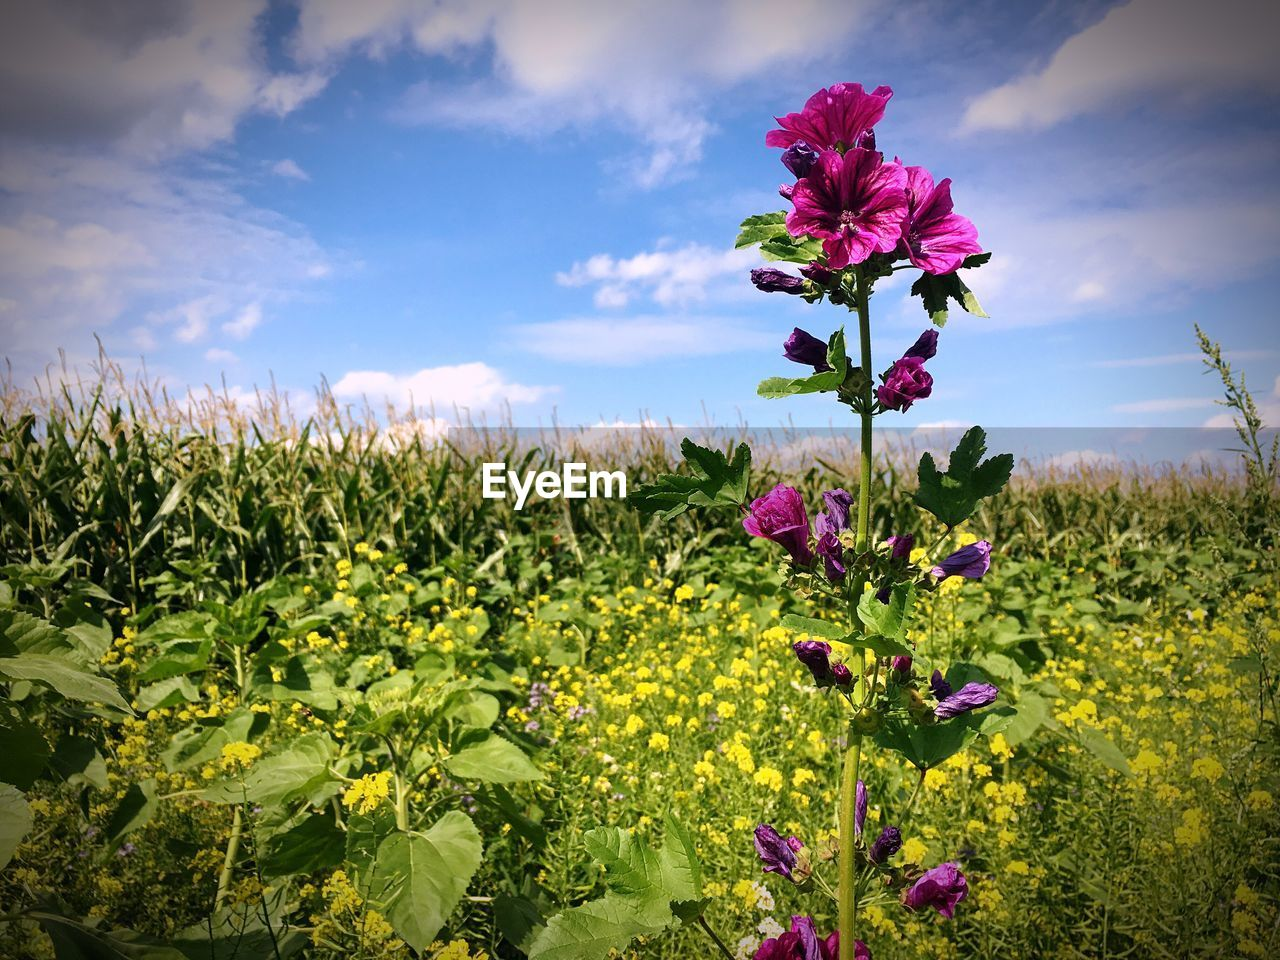 flower, growth, beauty in nature, nature, fragility, freshness, petal, sky, field, plant, cloud - sky, no people, day, outdoors, blooming, flower head, tranquility, rural scene, scenics, close-up